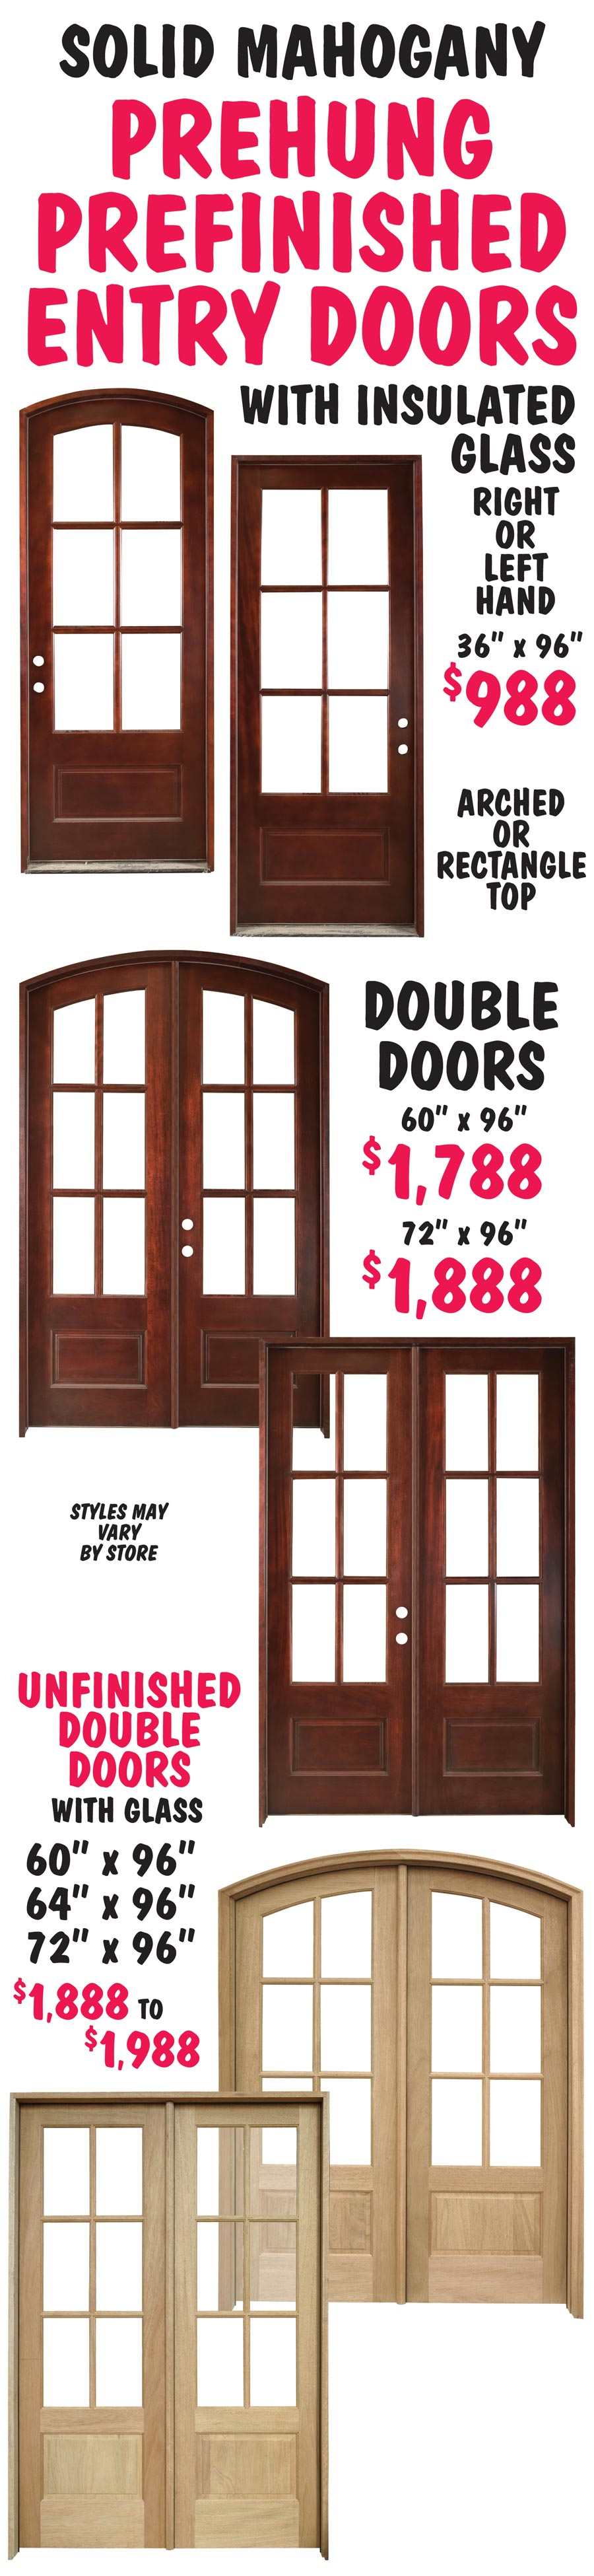 Solid Mahogany Prehung, Prefinished Entry Doors with insulated glass - Arched and Rectangle tops in Single and Double Door styles - 36 inches by 96 inches $988, 60 inches by 96 inches $1,788, and 72 inches by 96 inches $1,888. Also Unfinished Double Door styles - 3 Sizes - $1,888 to $1,988.